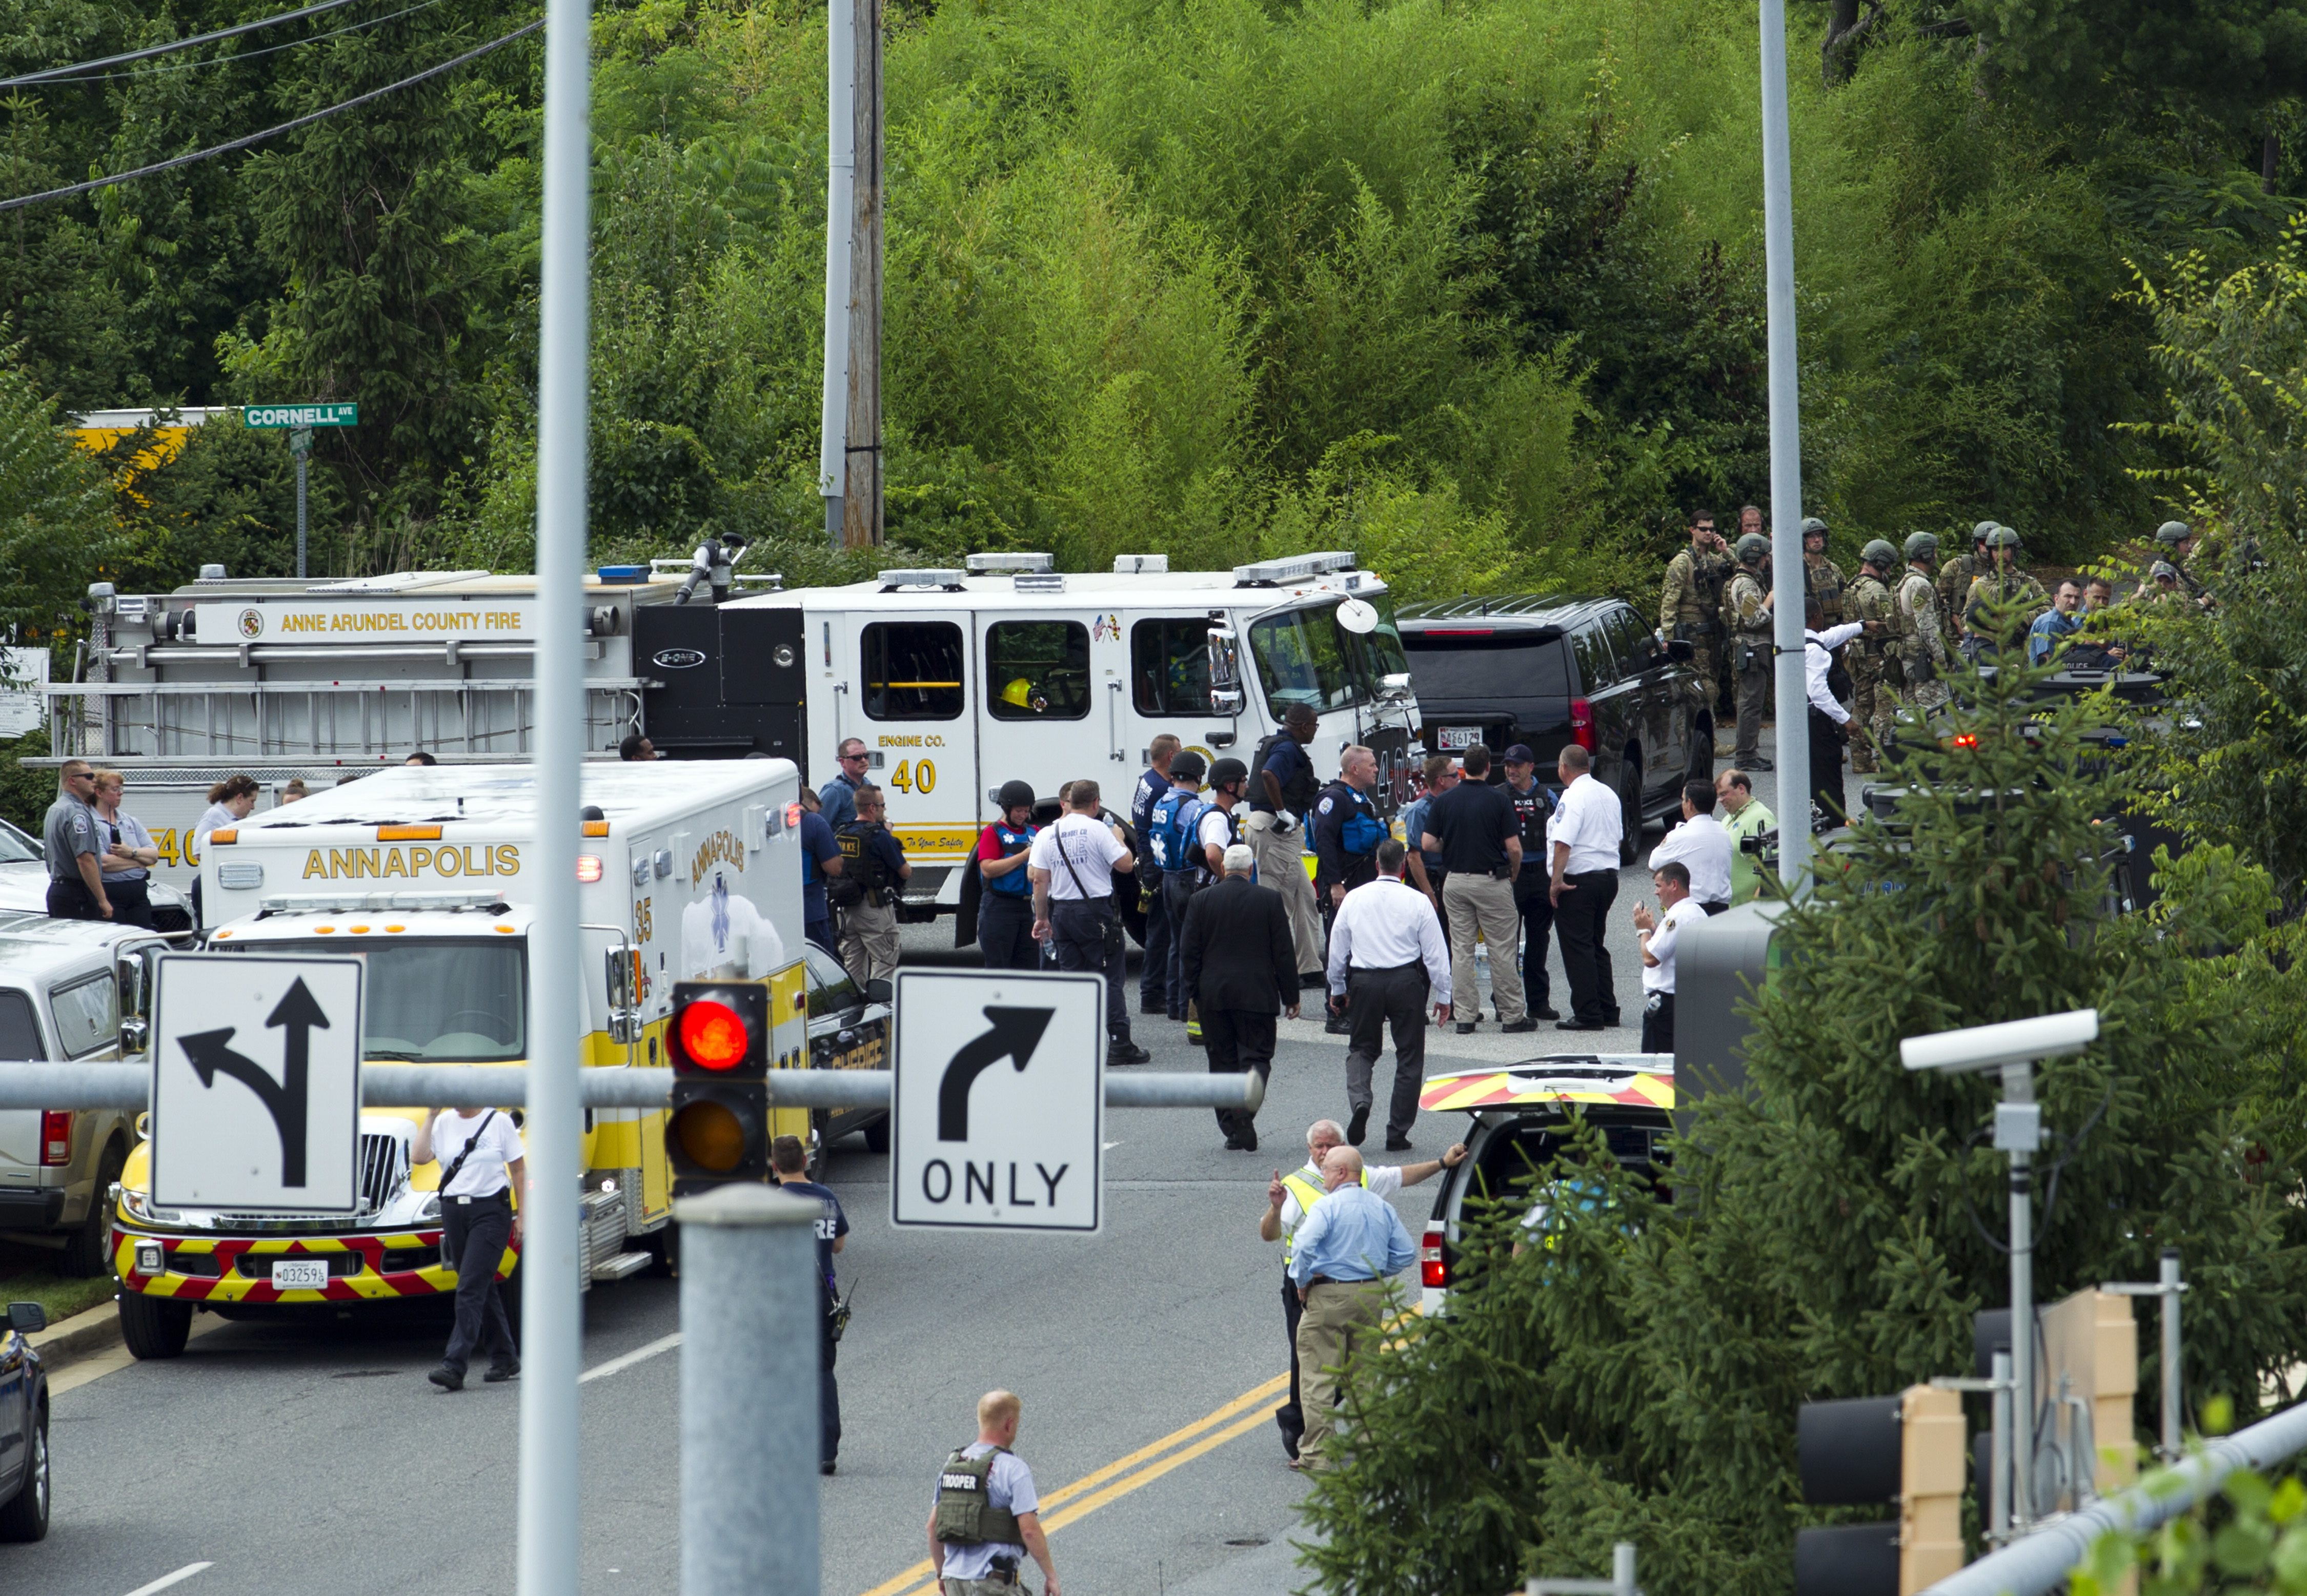 Capital Gazette suspect blocked entrance, then started 'hunting and killing,' official says